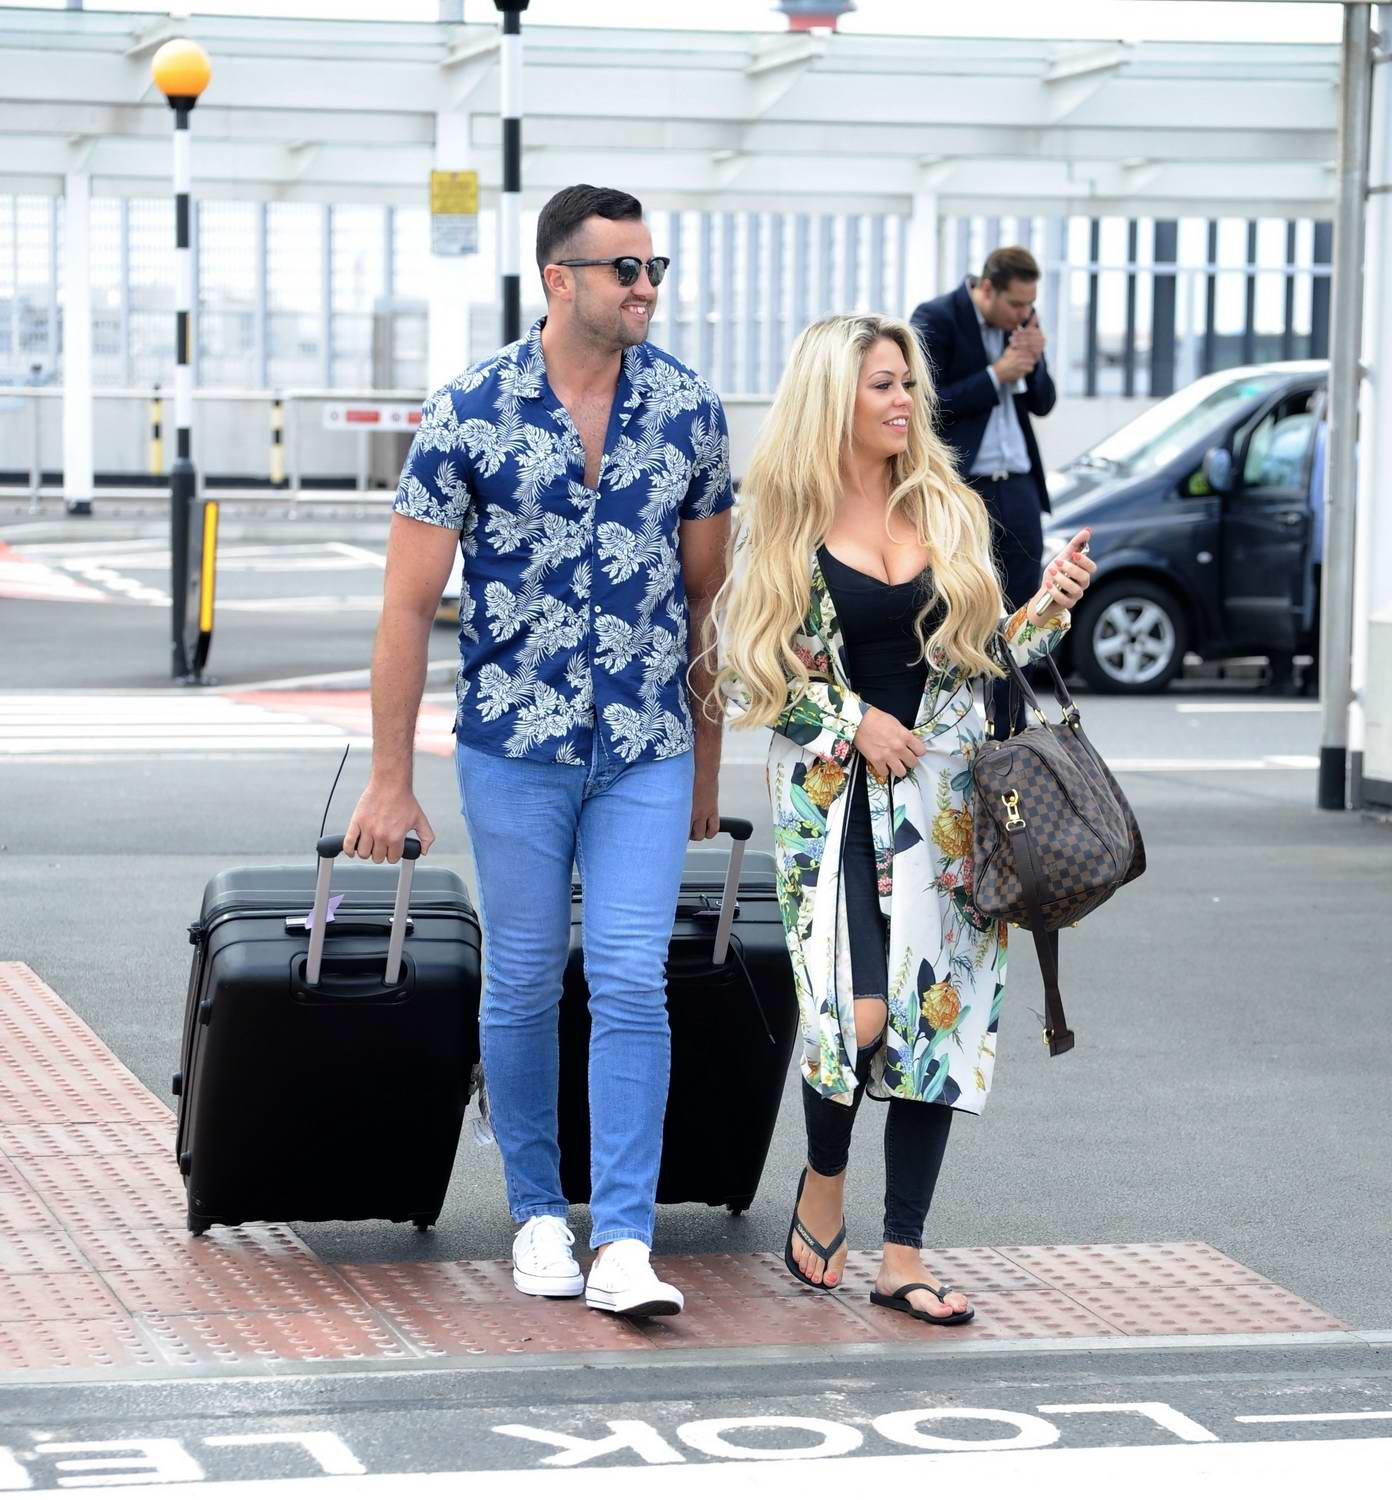 Bianca Gascoigne and boyfriend CJ Meeks arrives at the airport in London